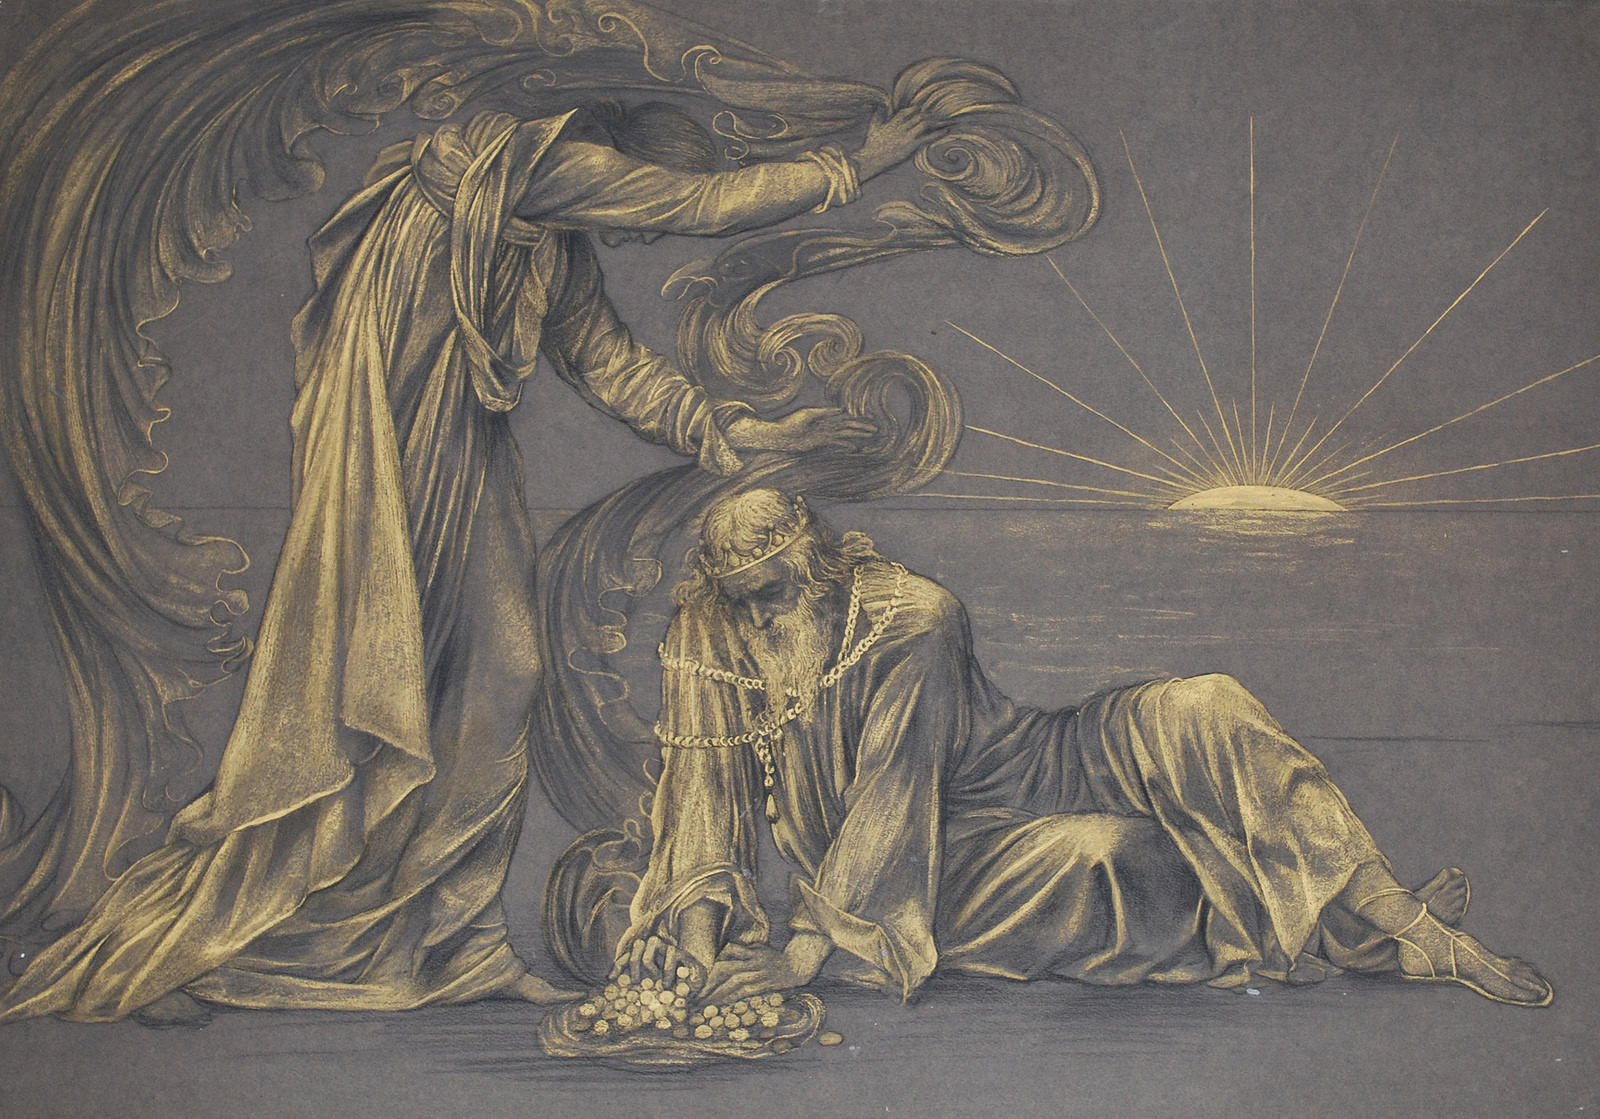 A Gold Compositional Study for Earthbound, by Evelyn Pickering de Morgan, 1897